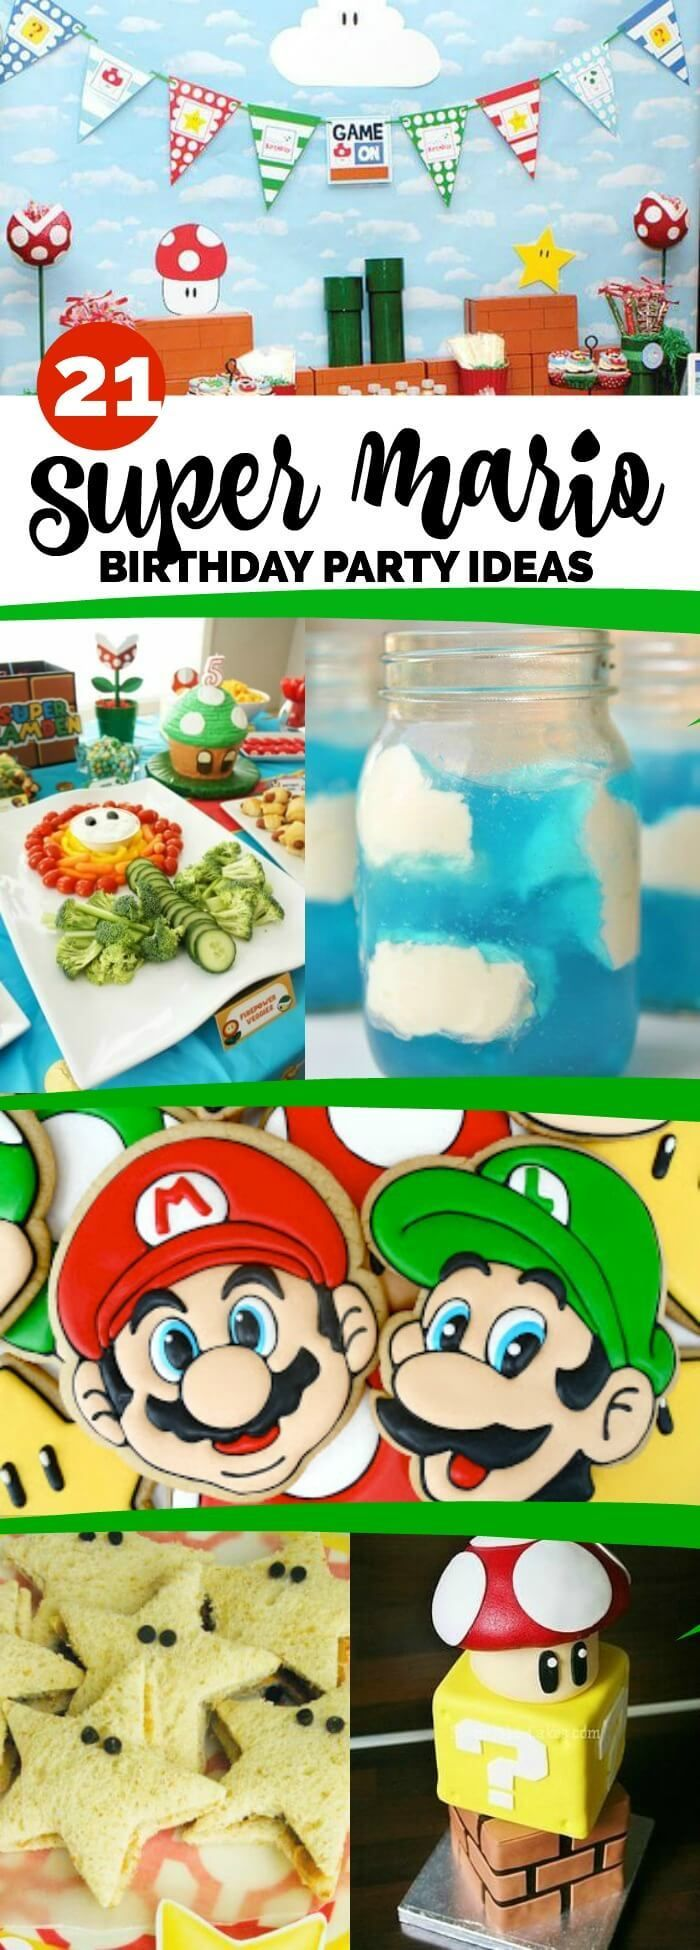 21 Super Mario Brothers Party Ideas and Supplies via @spaceshipslb